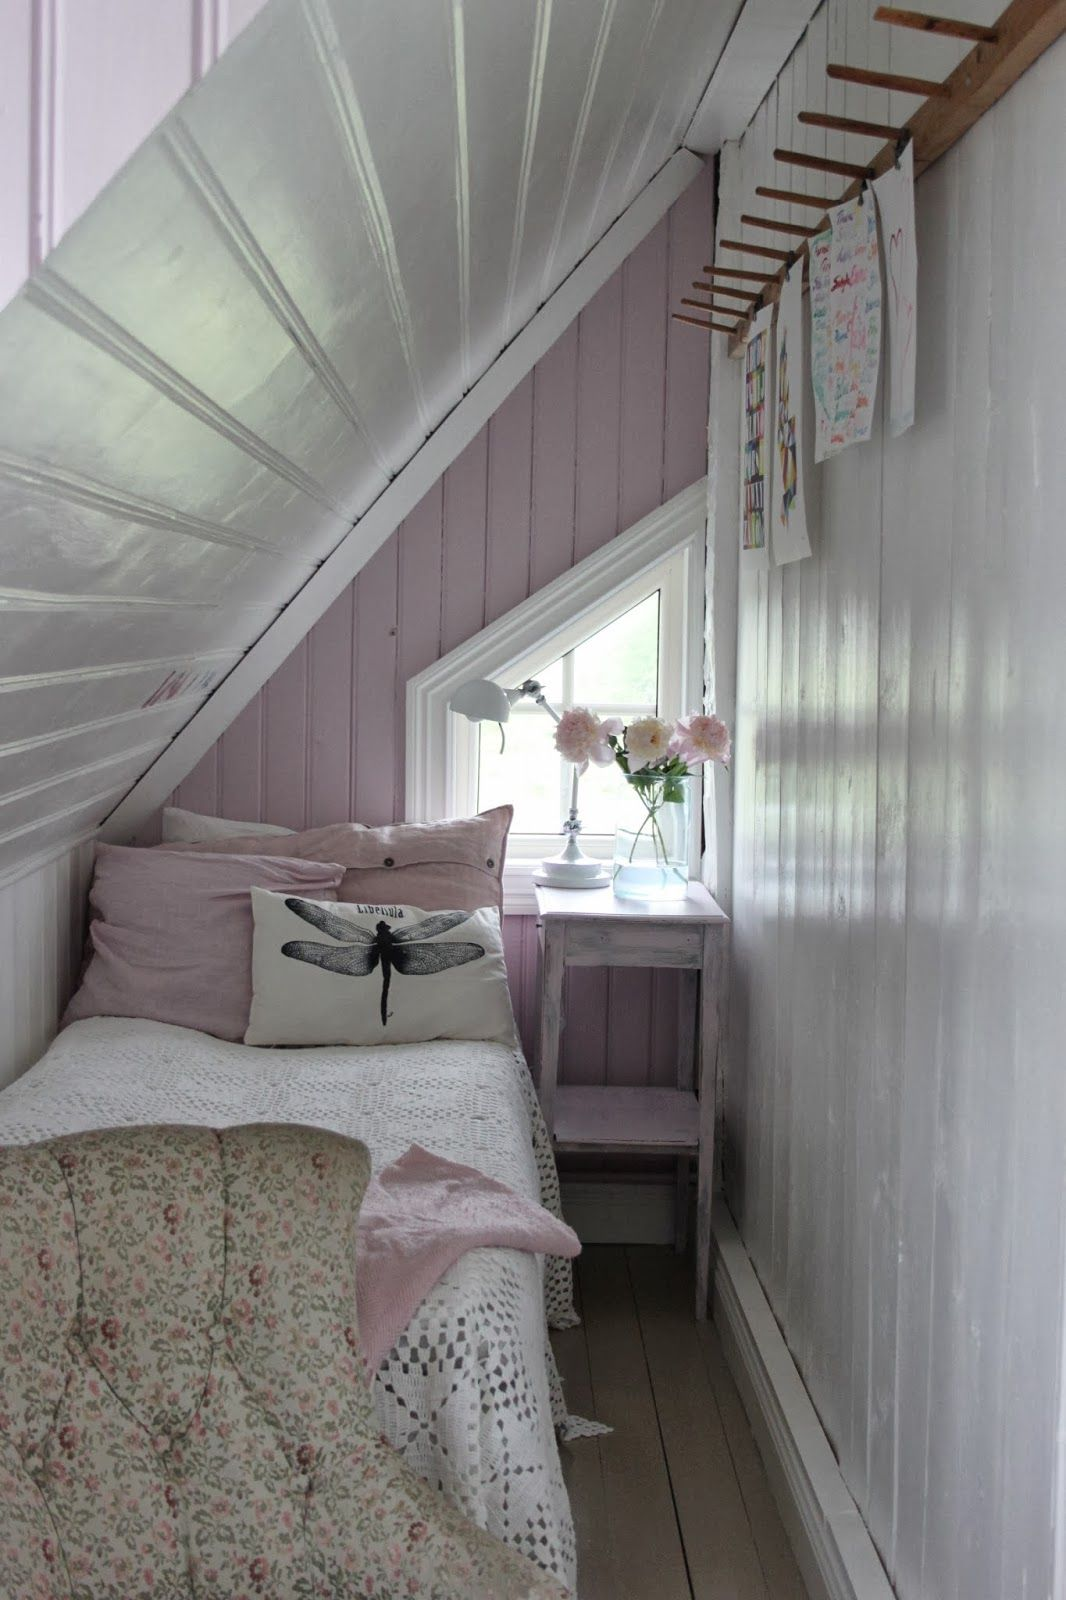 Attic Room Design Ideas Small Attic Bedroom What Grandma Would Have Called Quotthe